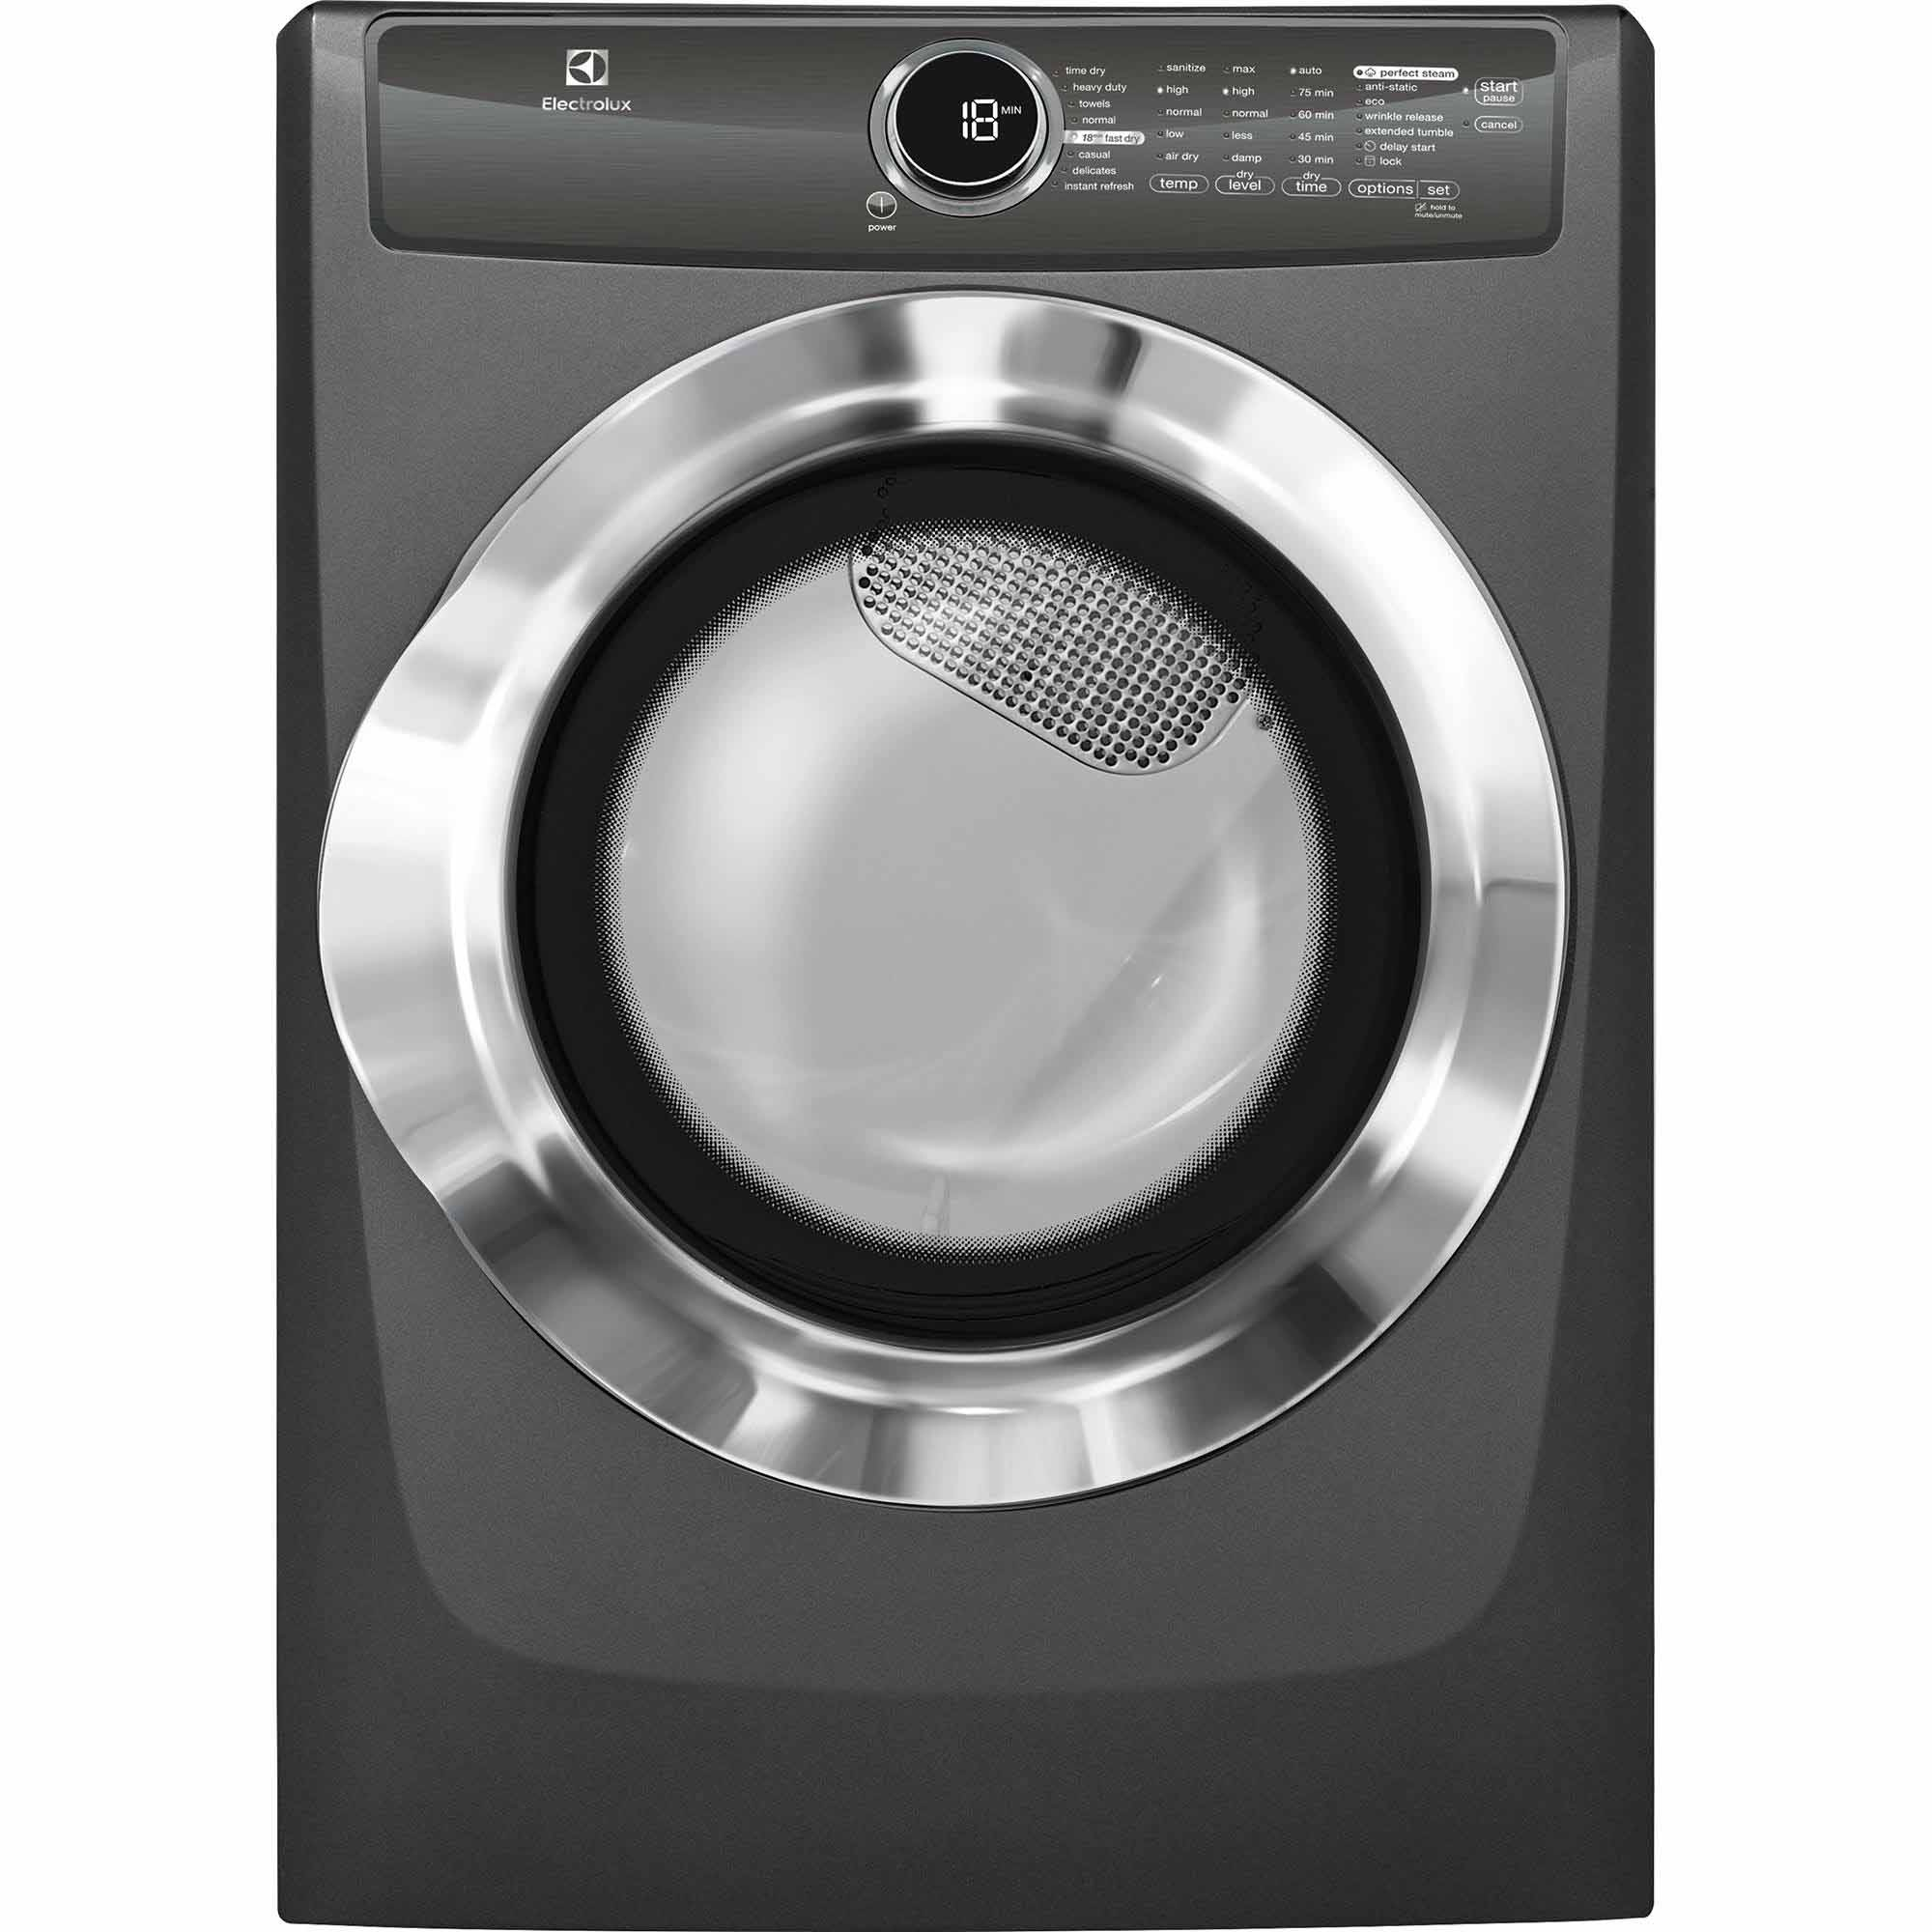 Electrolux EFME517STT 8.0 cu. ft. Electric Dryer w/ Instant Refresh - Titanium